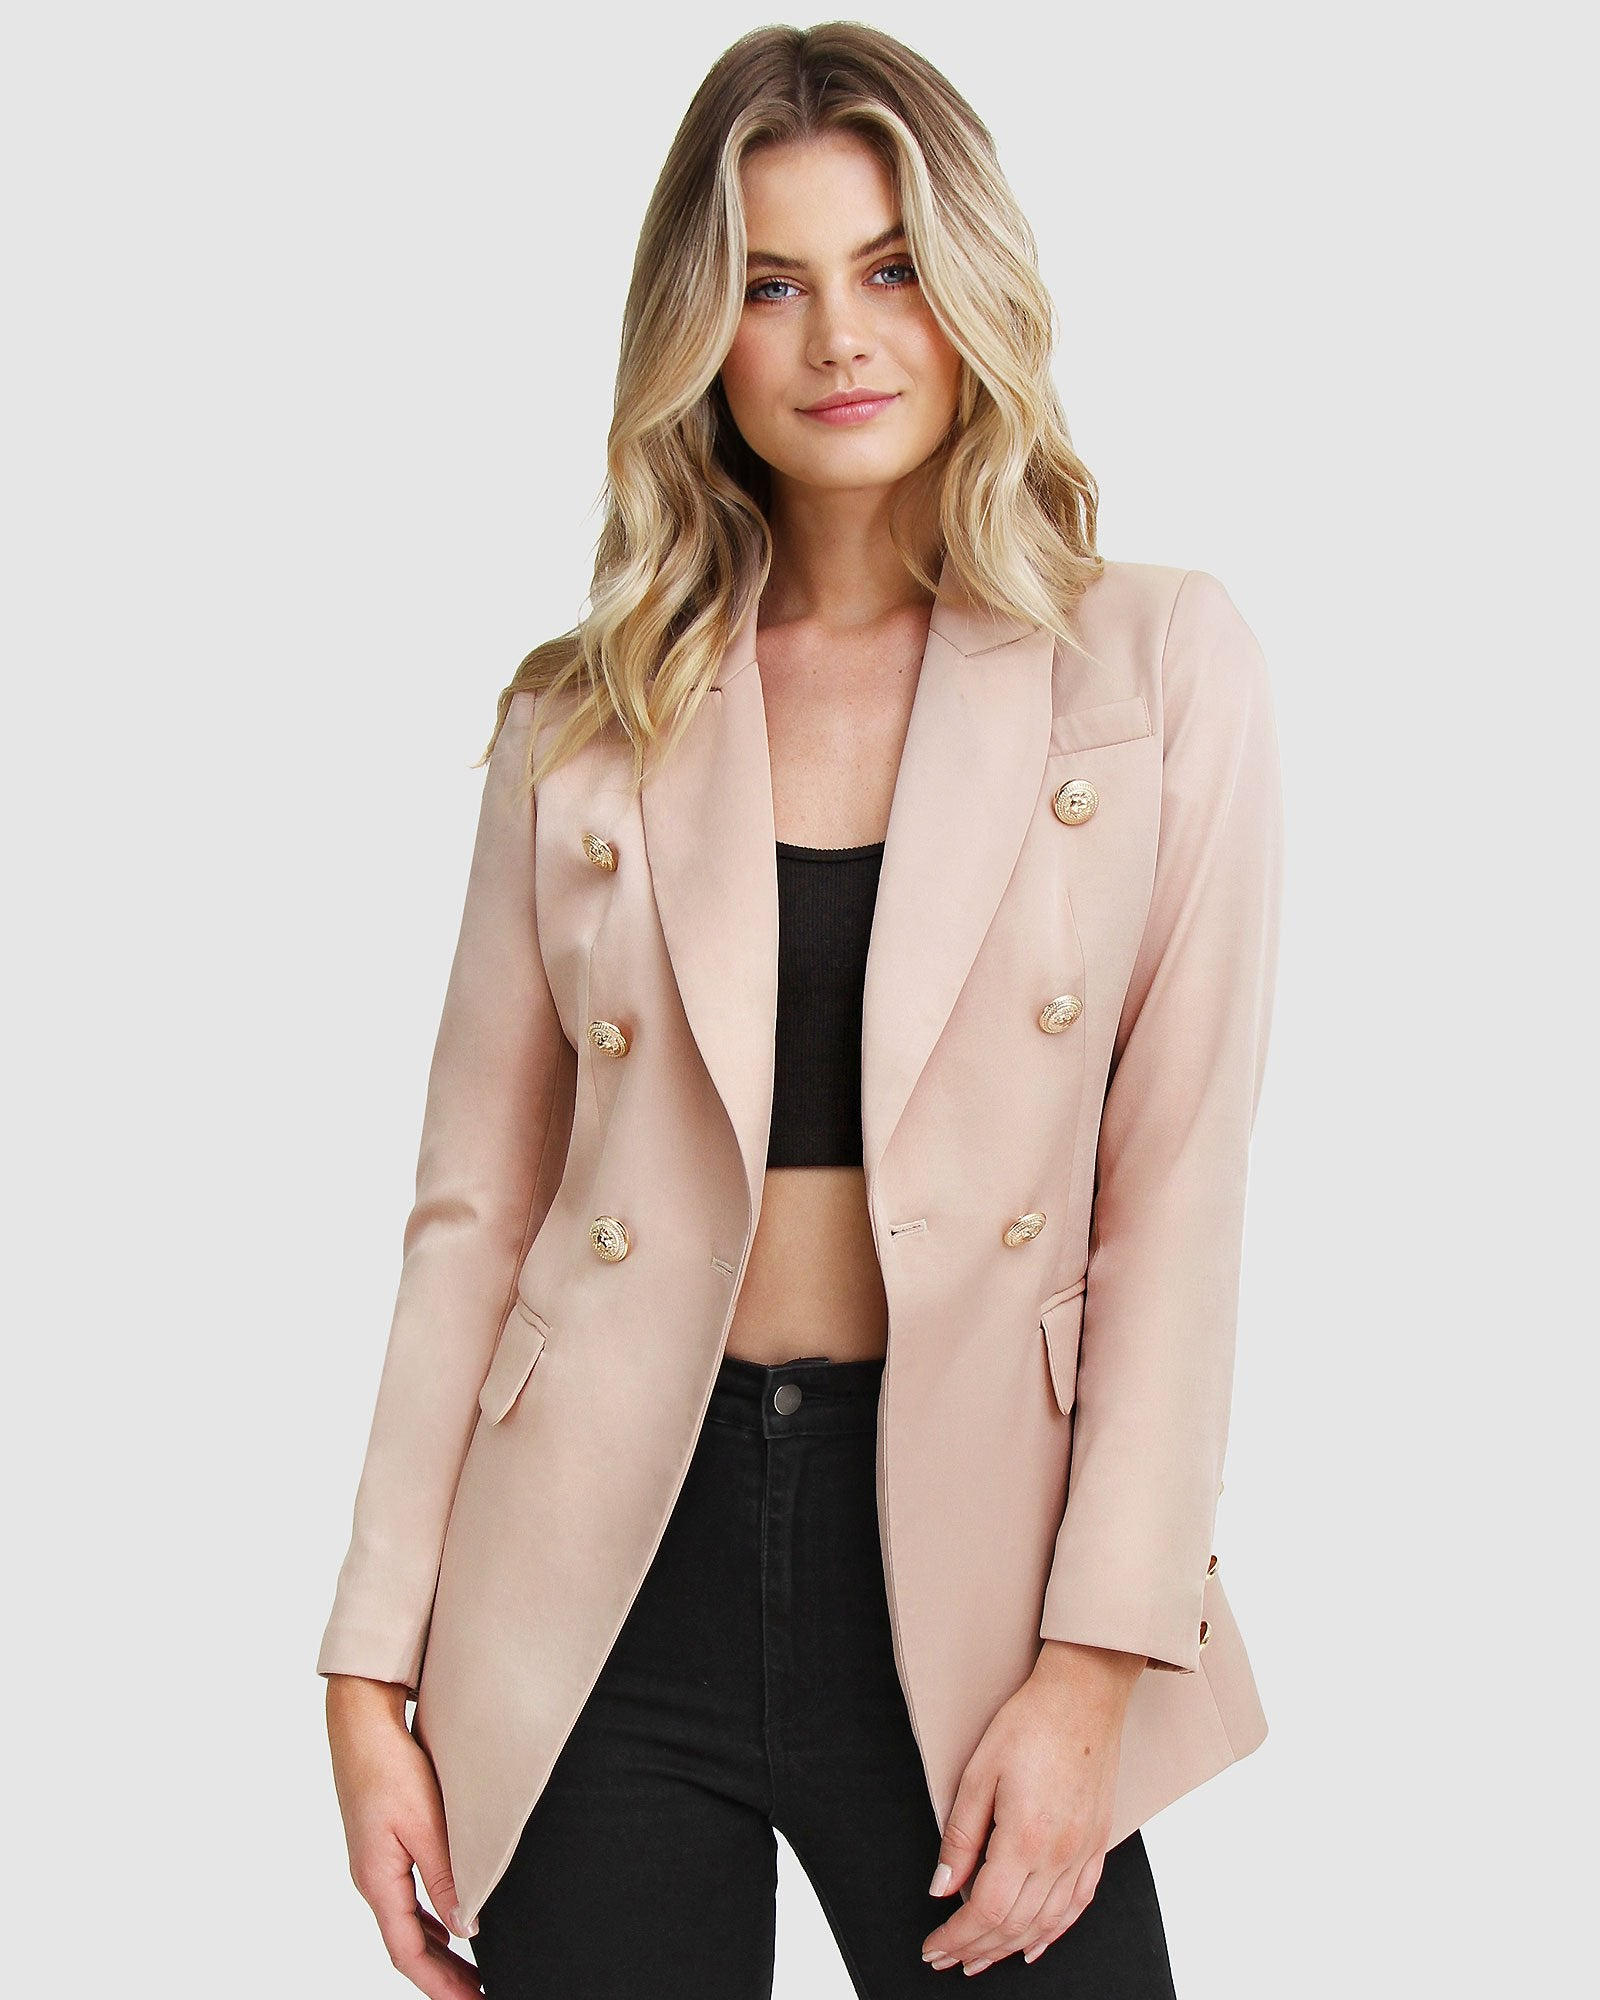 Princess Polly Blazer - Blush